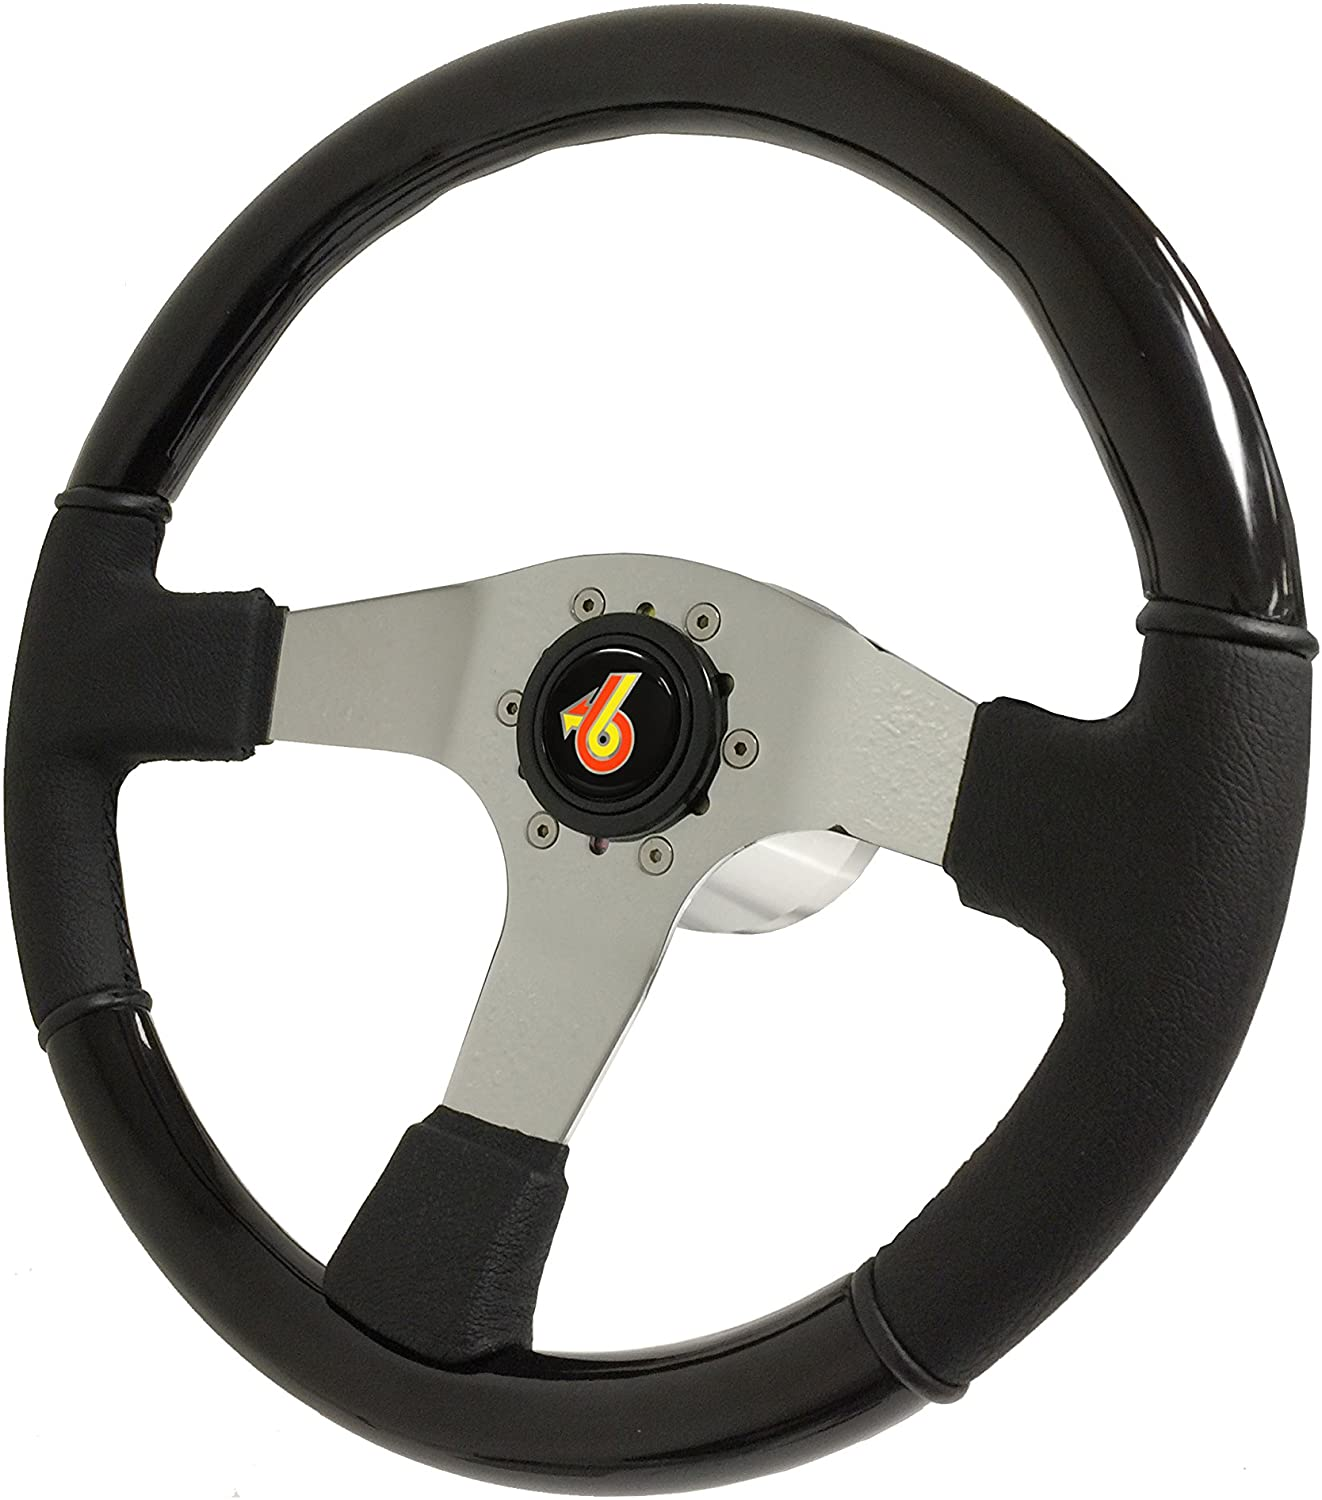 Volante Sport 6-Bolt Black Ash-Leather Steering Wheel Kit compatible with 1982 1983 1984 1985 1986 1987 1988 1989 Buick Grand National